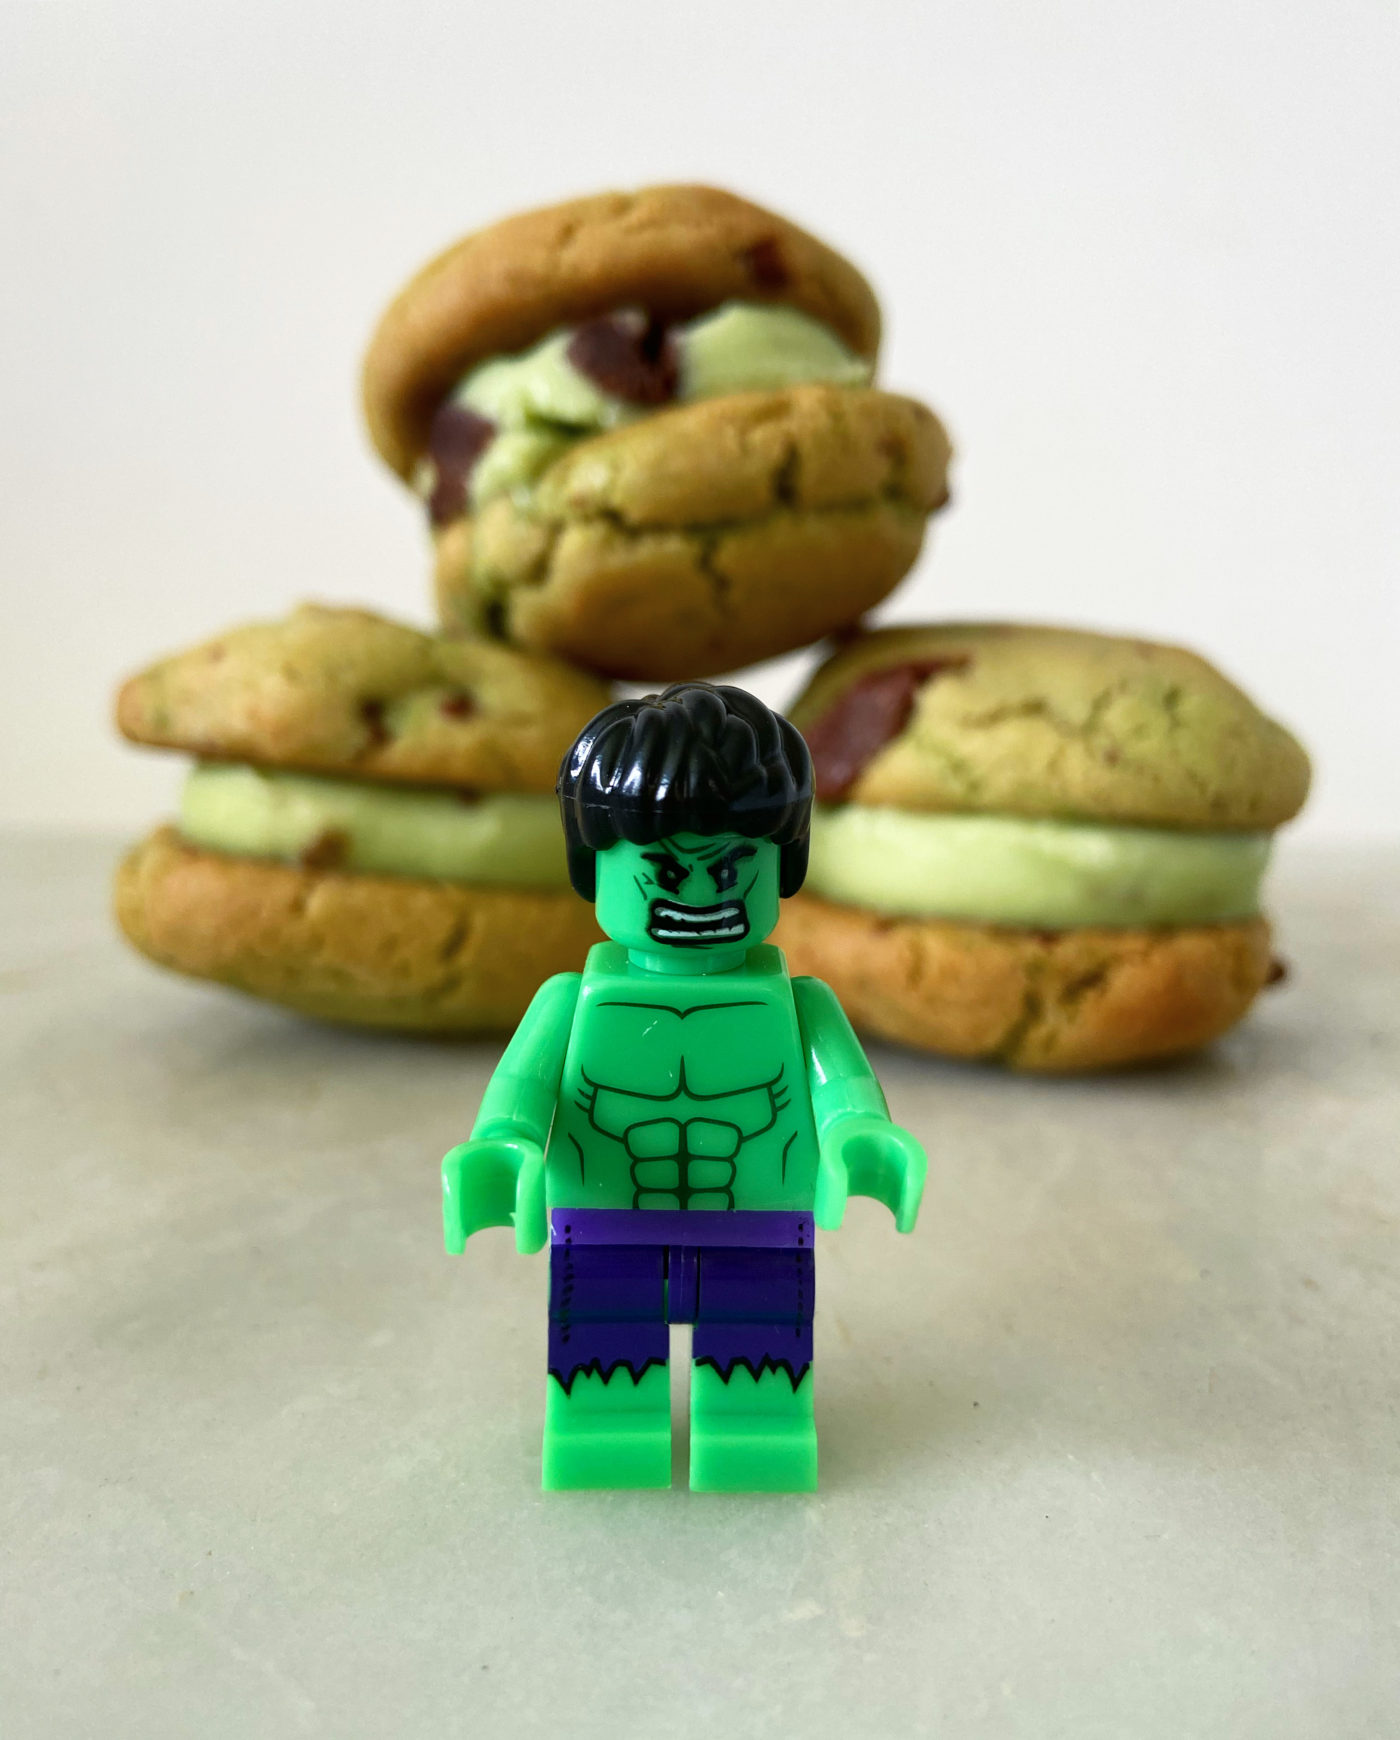 Hulk ice cream sandwiches